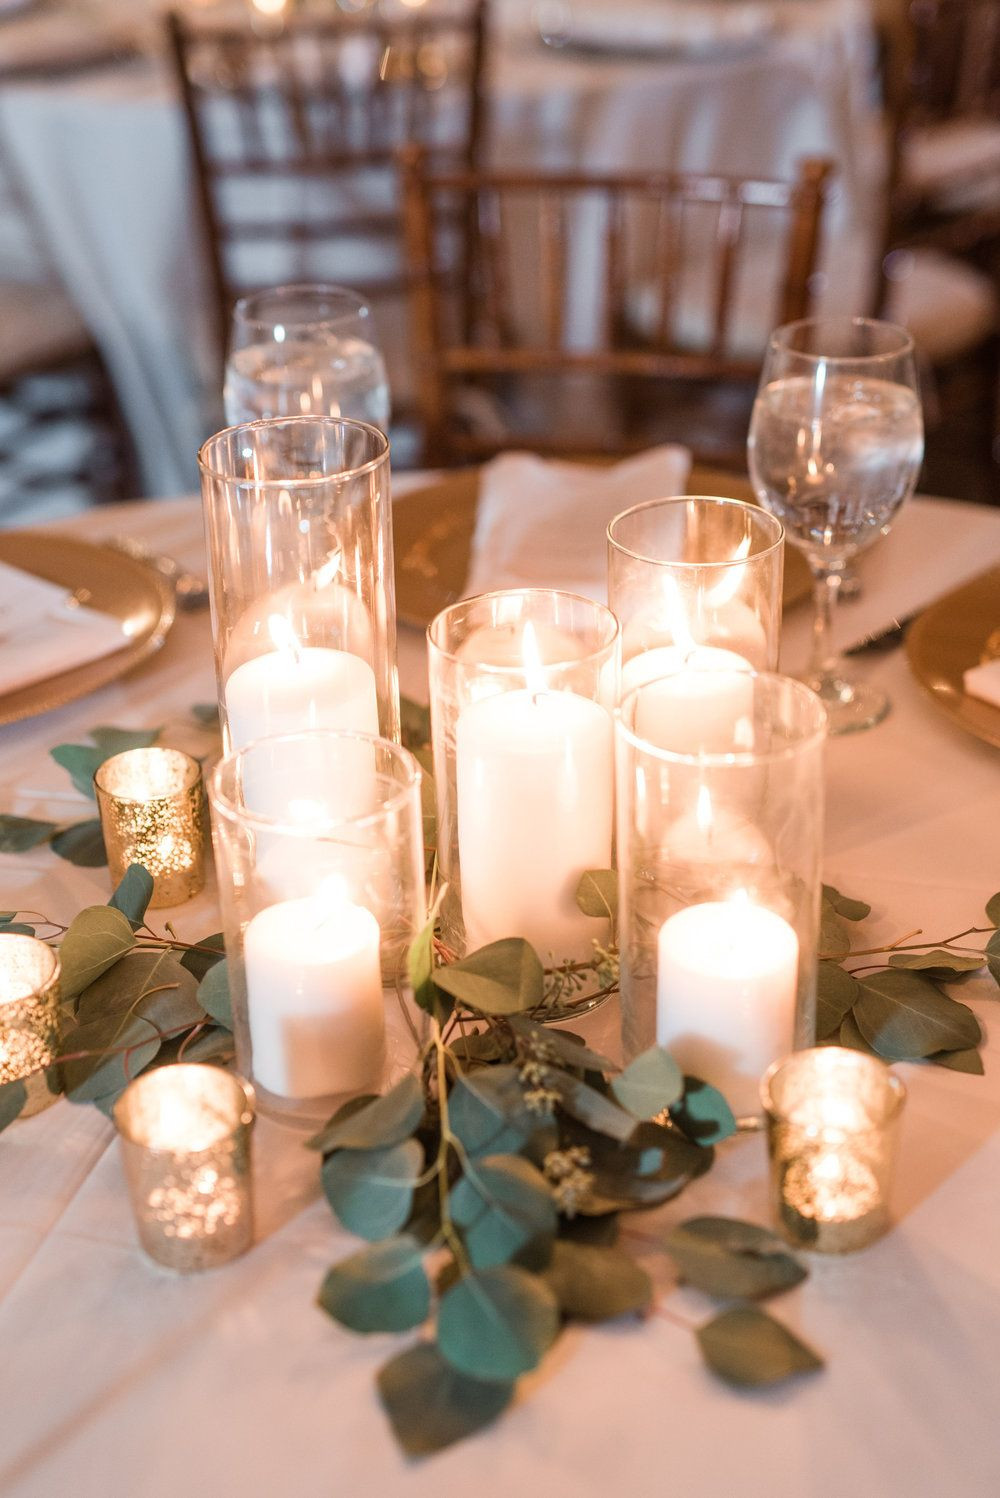 floating candle cylinder vase sets of jessica johns early mountain vineyard wedding floral regarding romantic candlelit pillar candle centerpiece with eucalyptus greenery and gold mercury glass votives for a winery